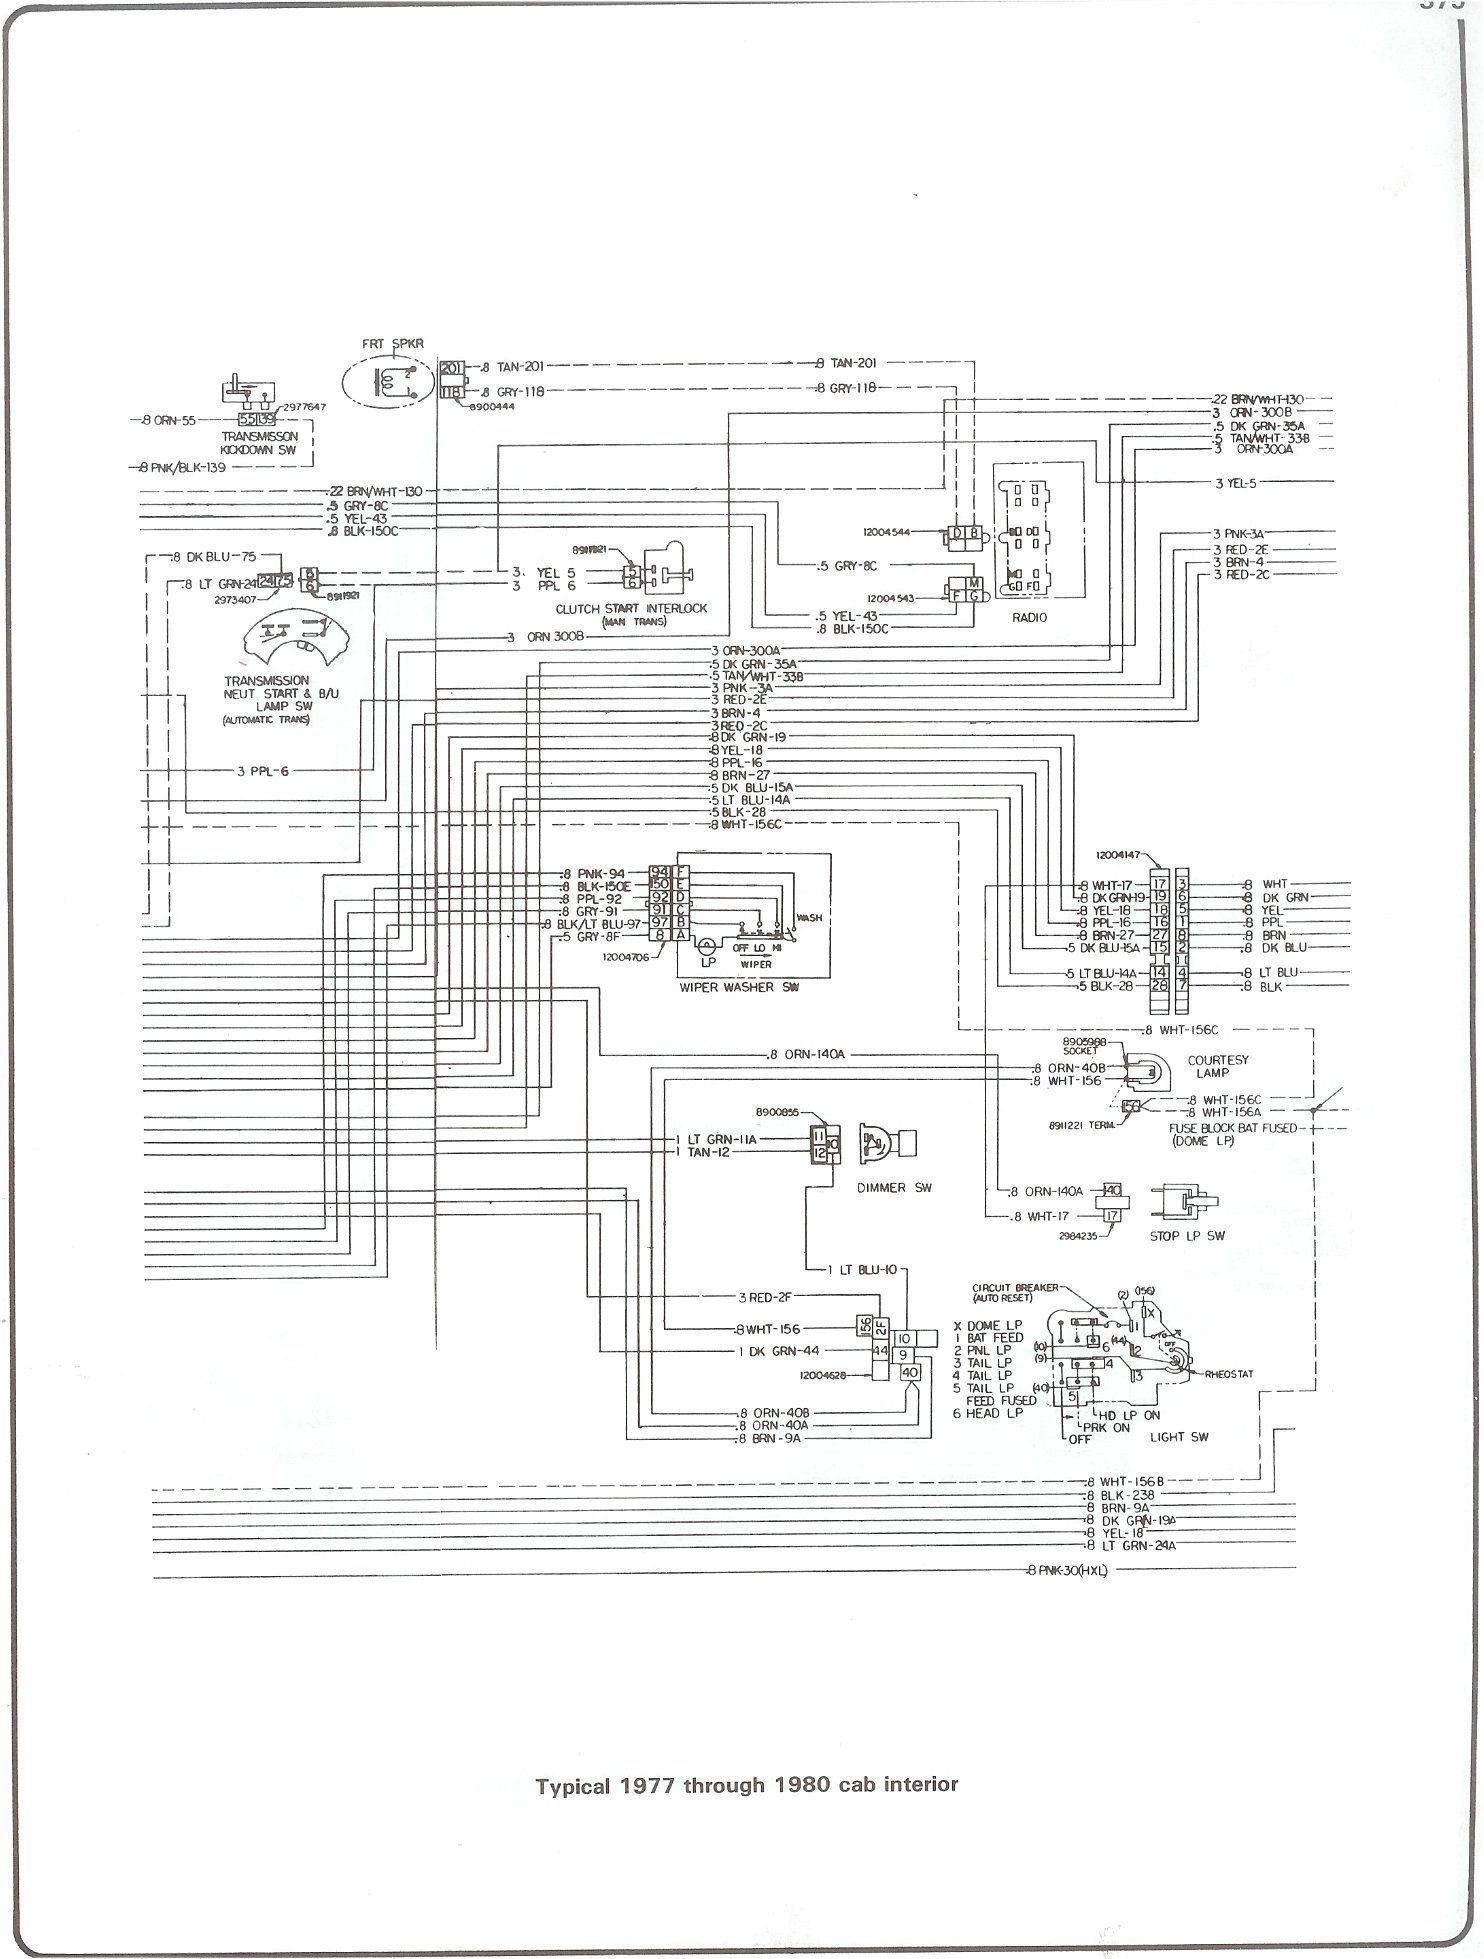 windshield wiper wiring diagram 87 chevy house wiring diagram rh maxturner co